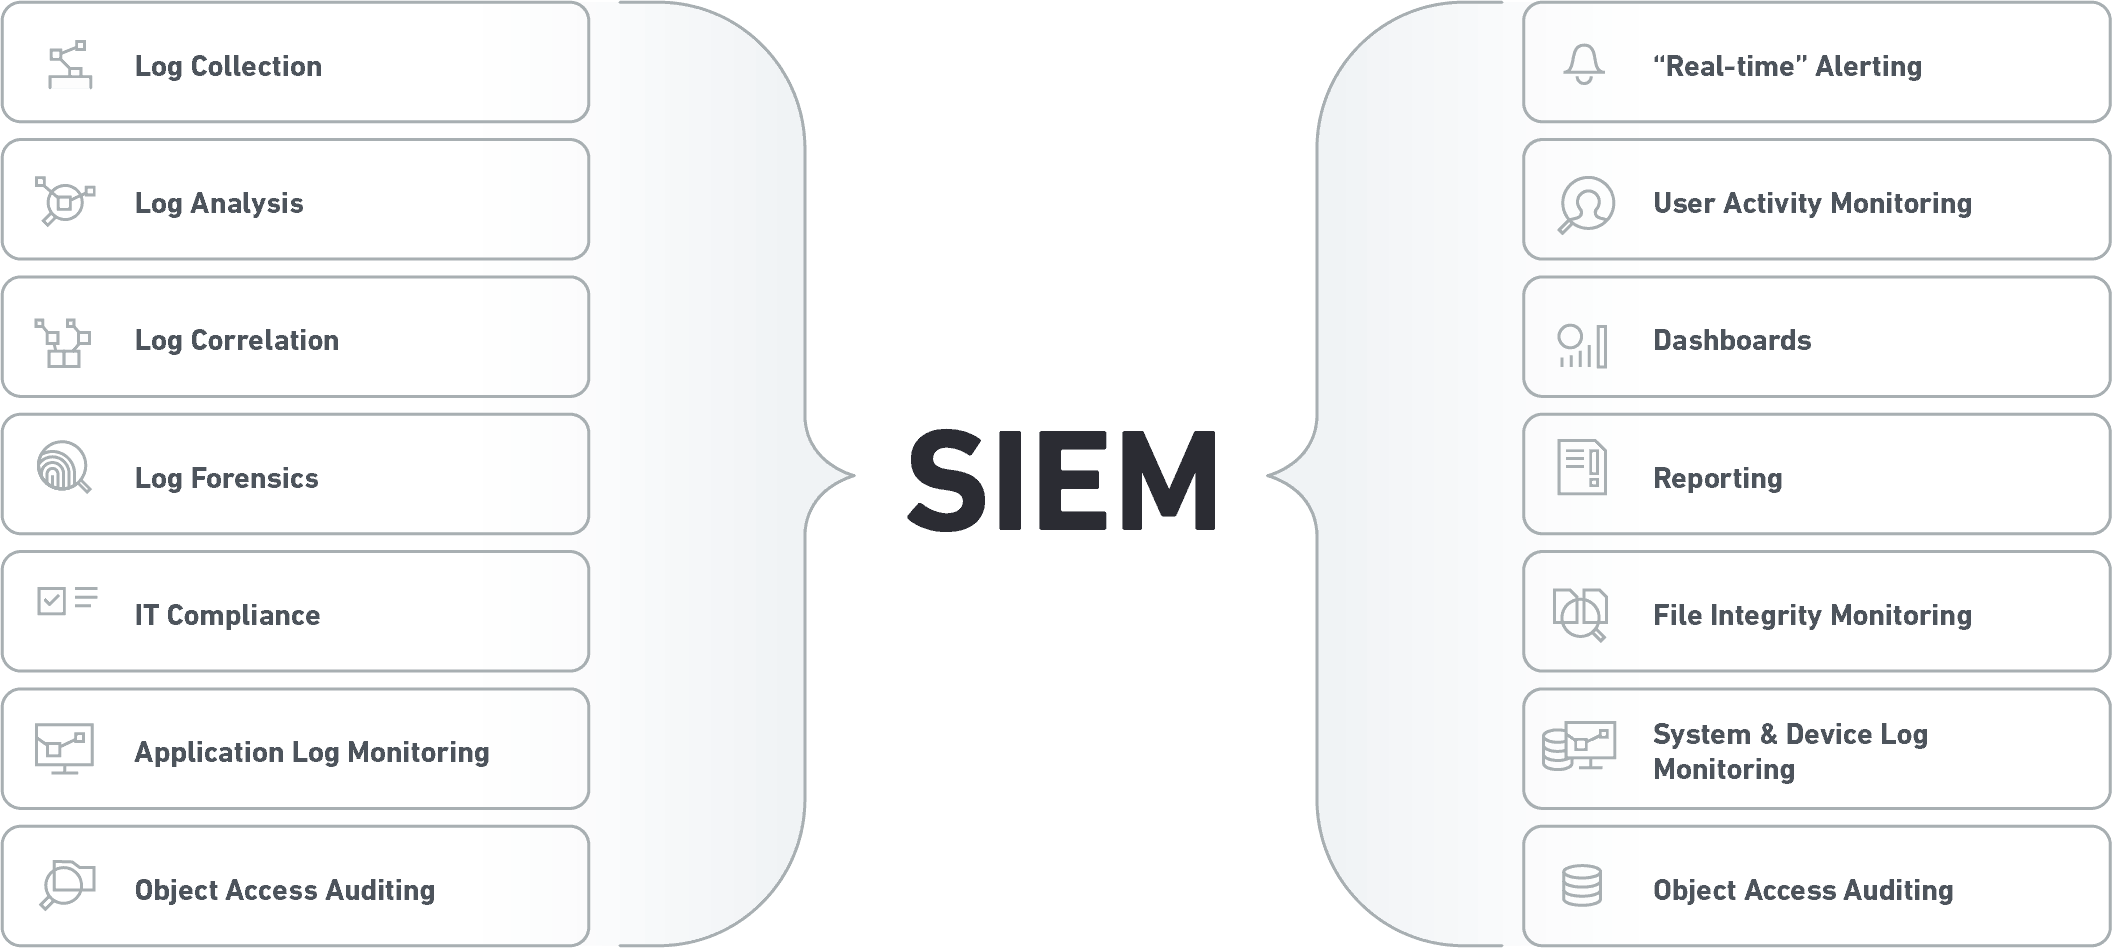 Siem Architecture Technology Process And Data